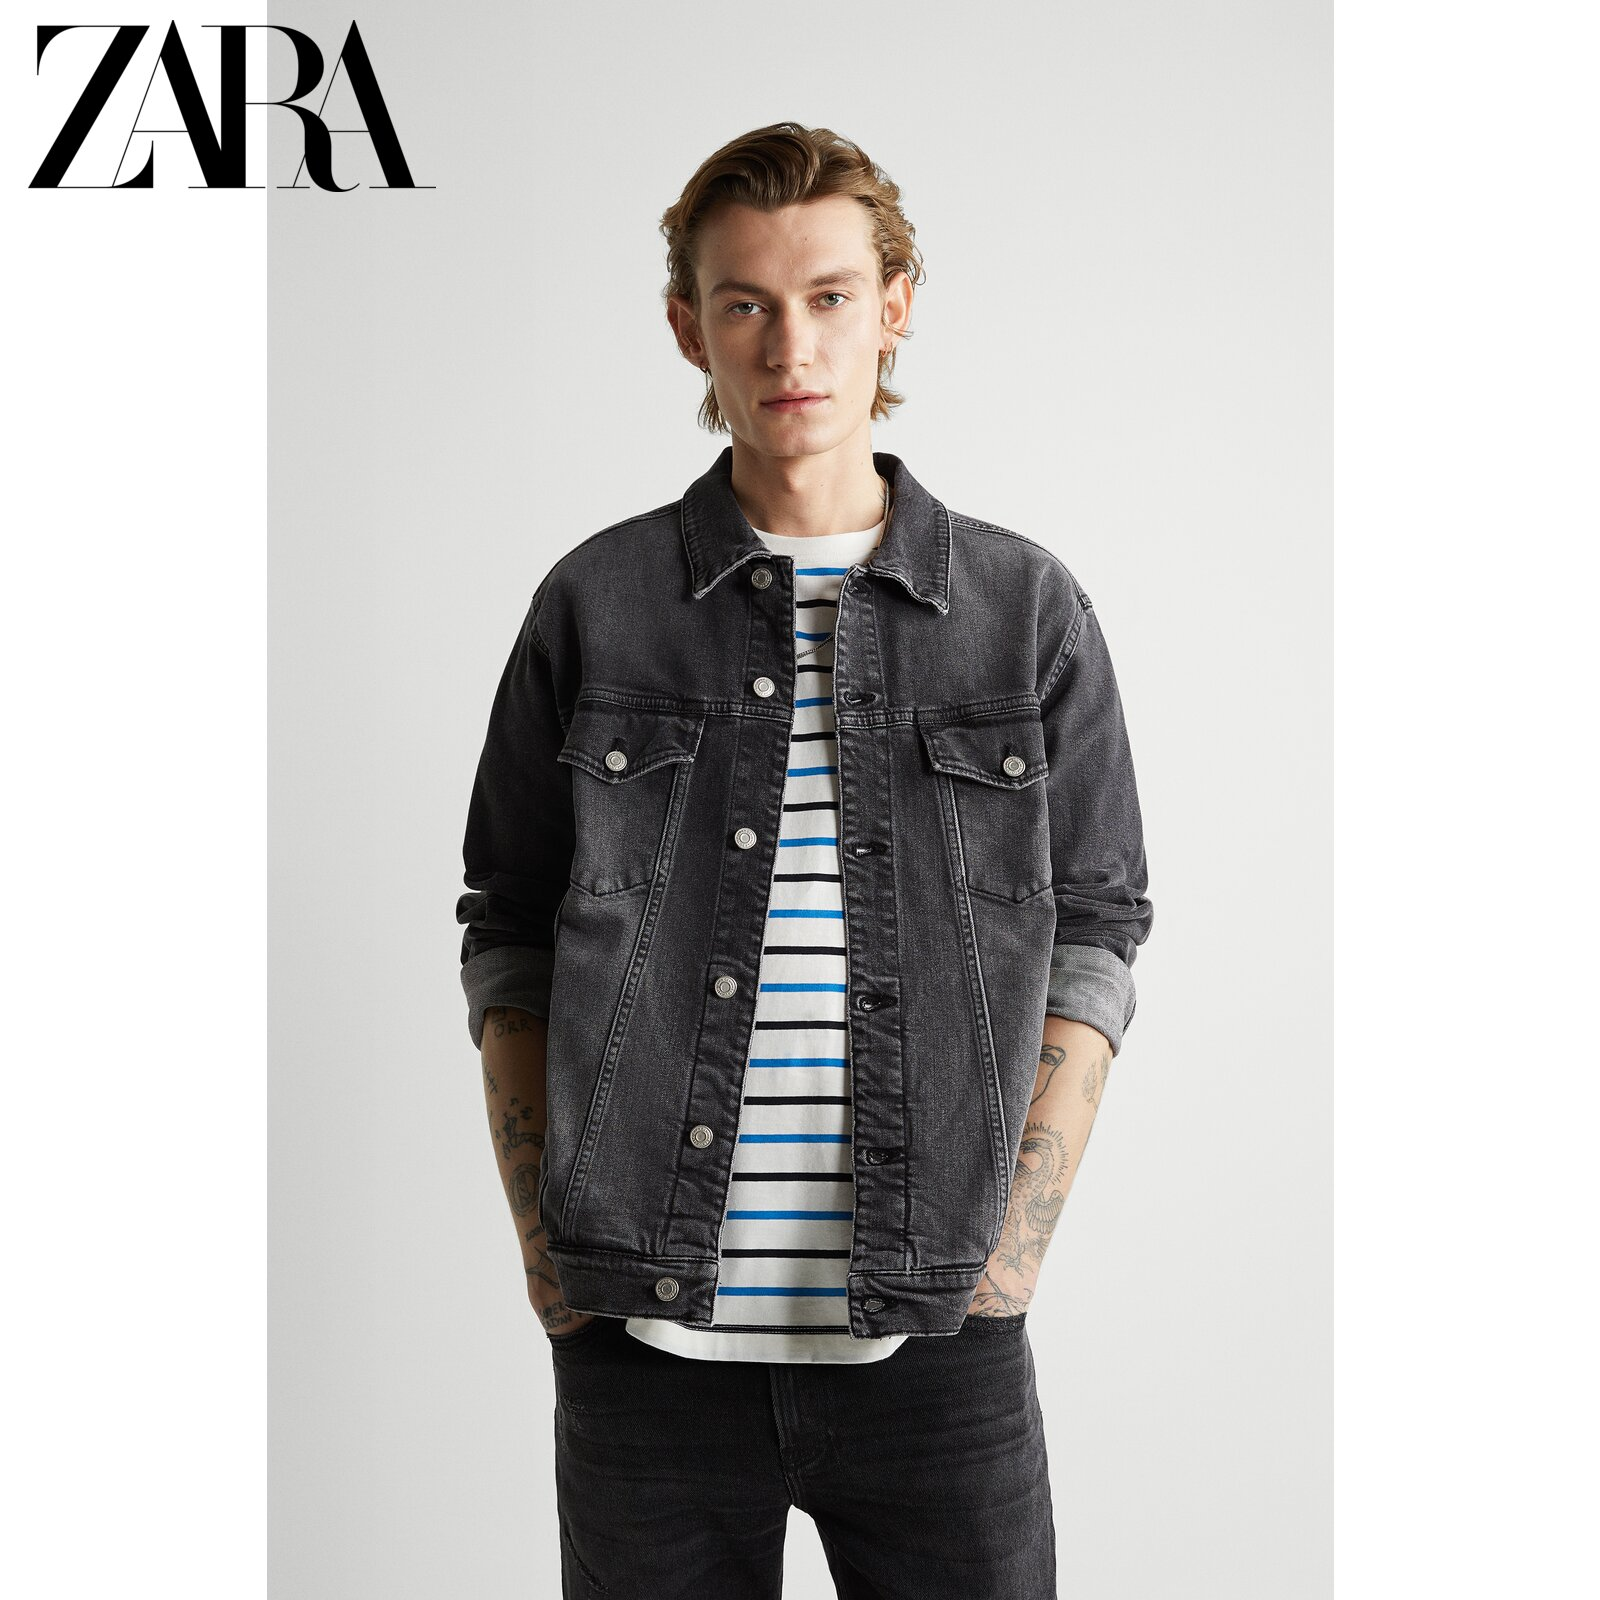 ZARA new men's basic denim jacket jacket 04454450802